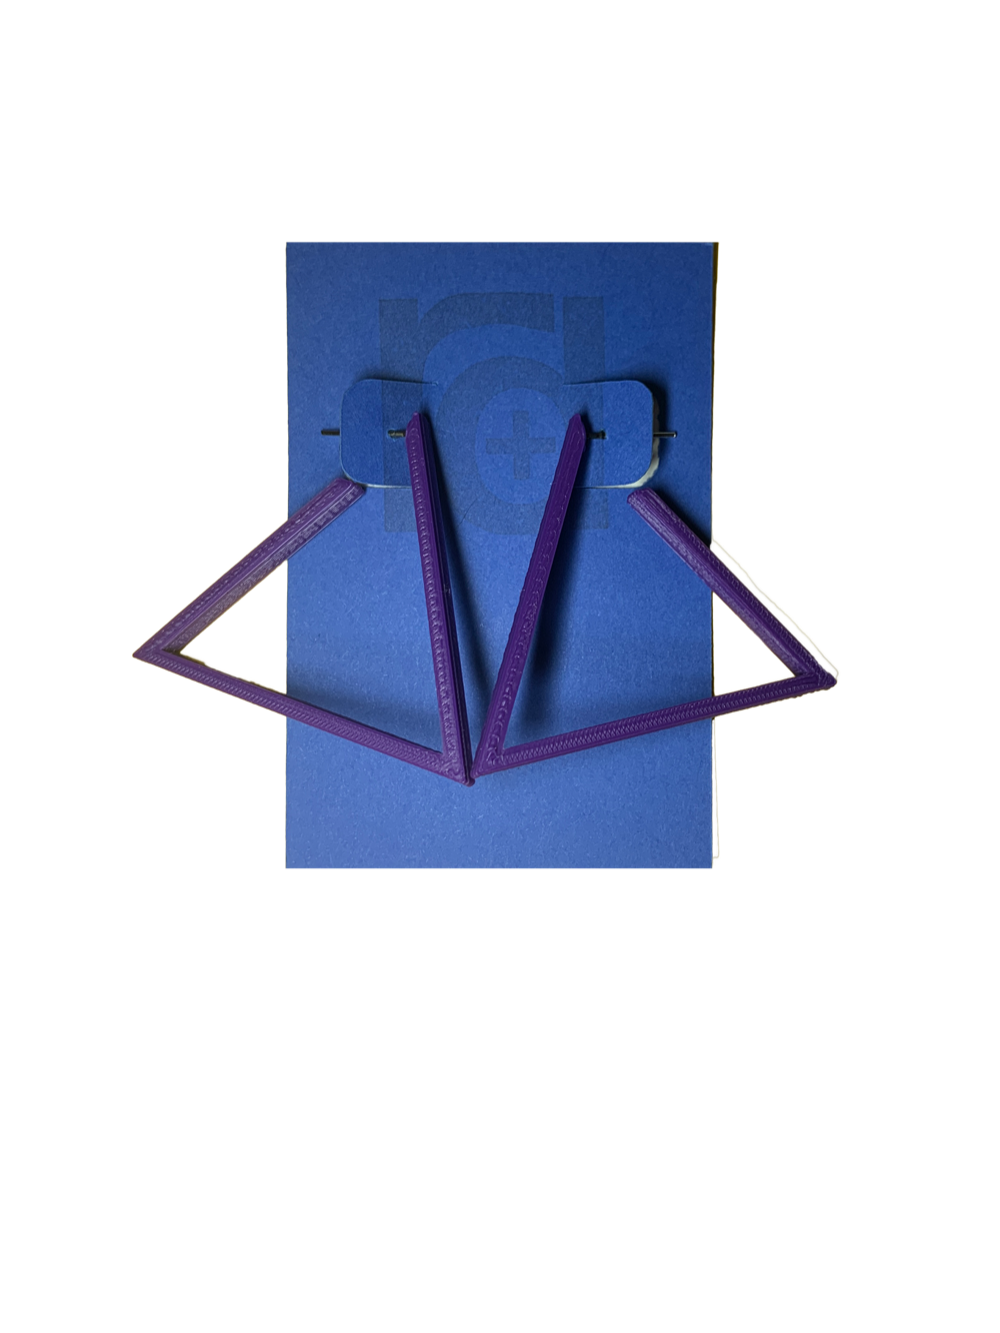 Hanging off of a blue R+D earring card are two 3D printed earrings. They are hoops that are in the shape of a triangle. These earrings are printed in a eco friendly purple.